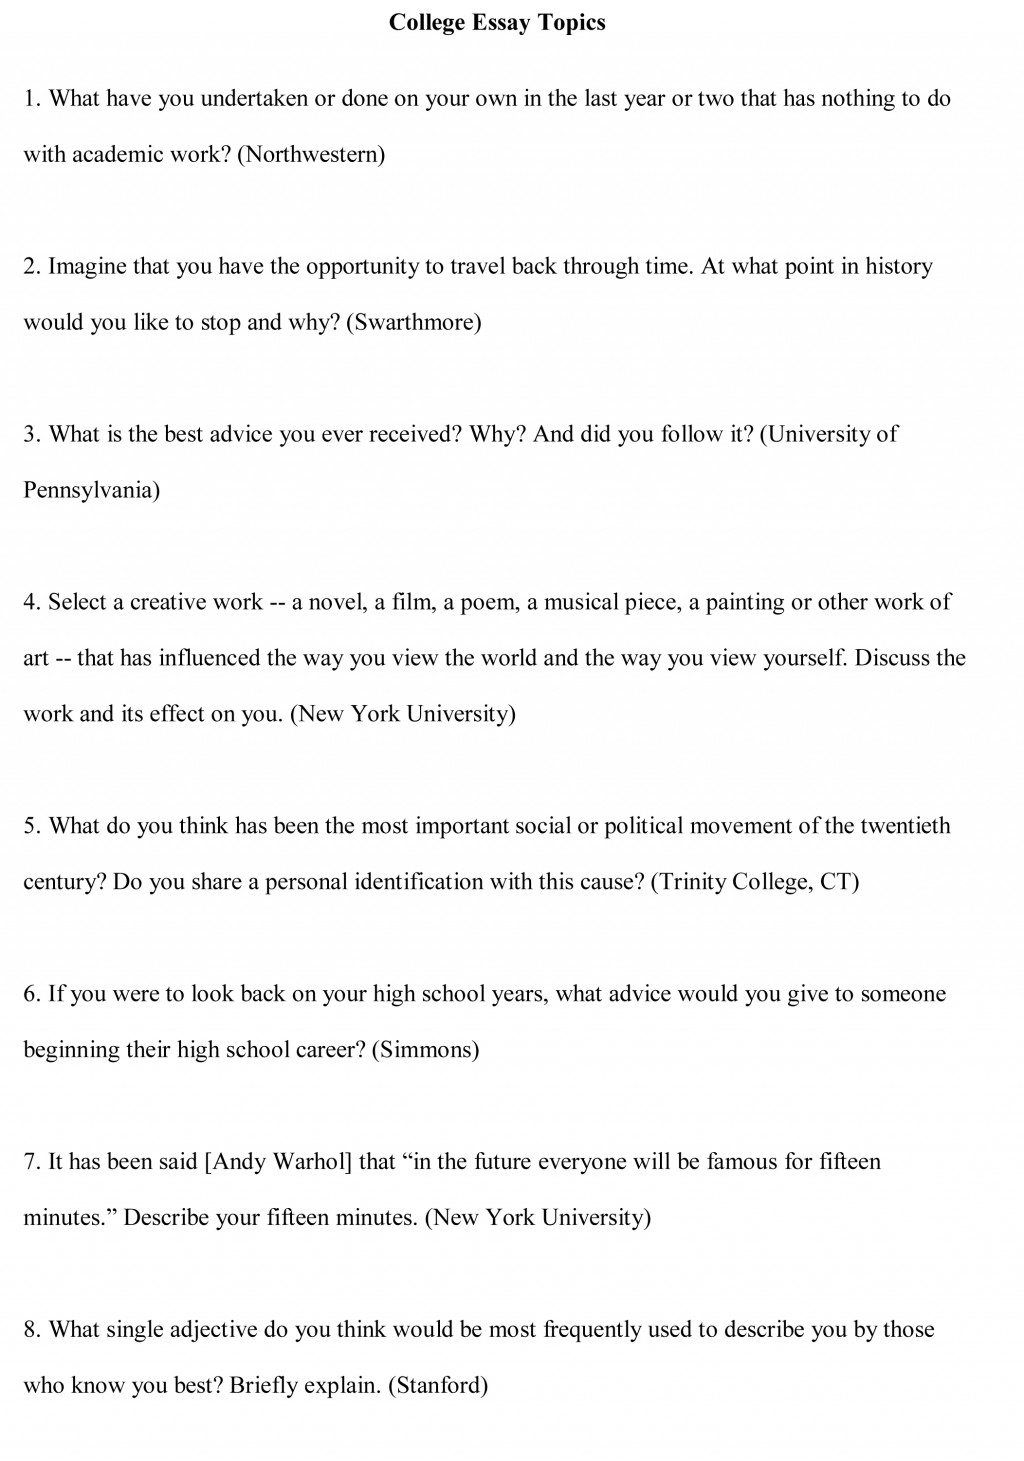 003 College Essay Topics Free Sample1 Prompts Impressive And Examples Application Uc 2017 Large